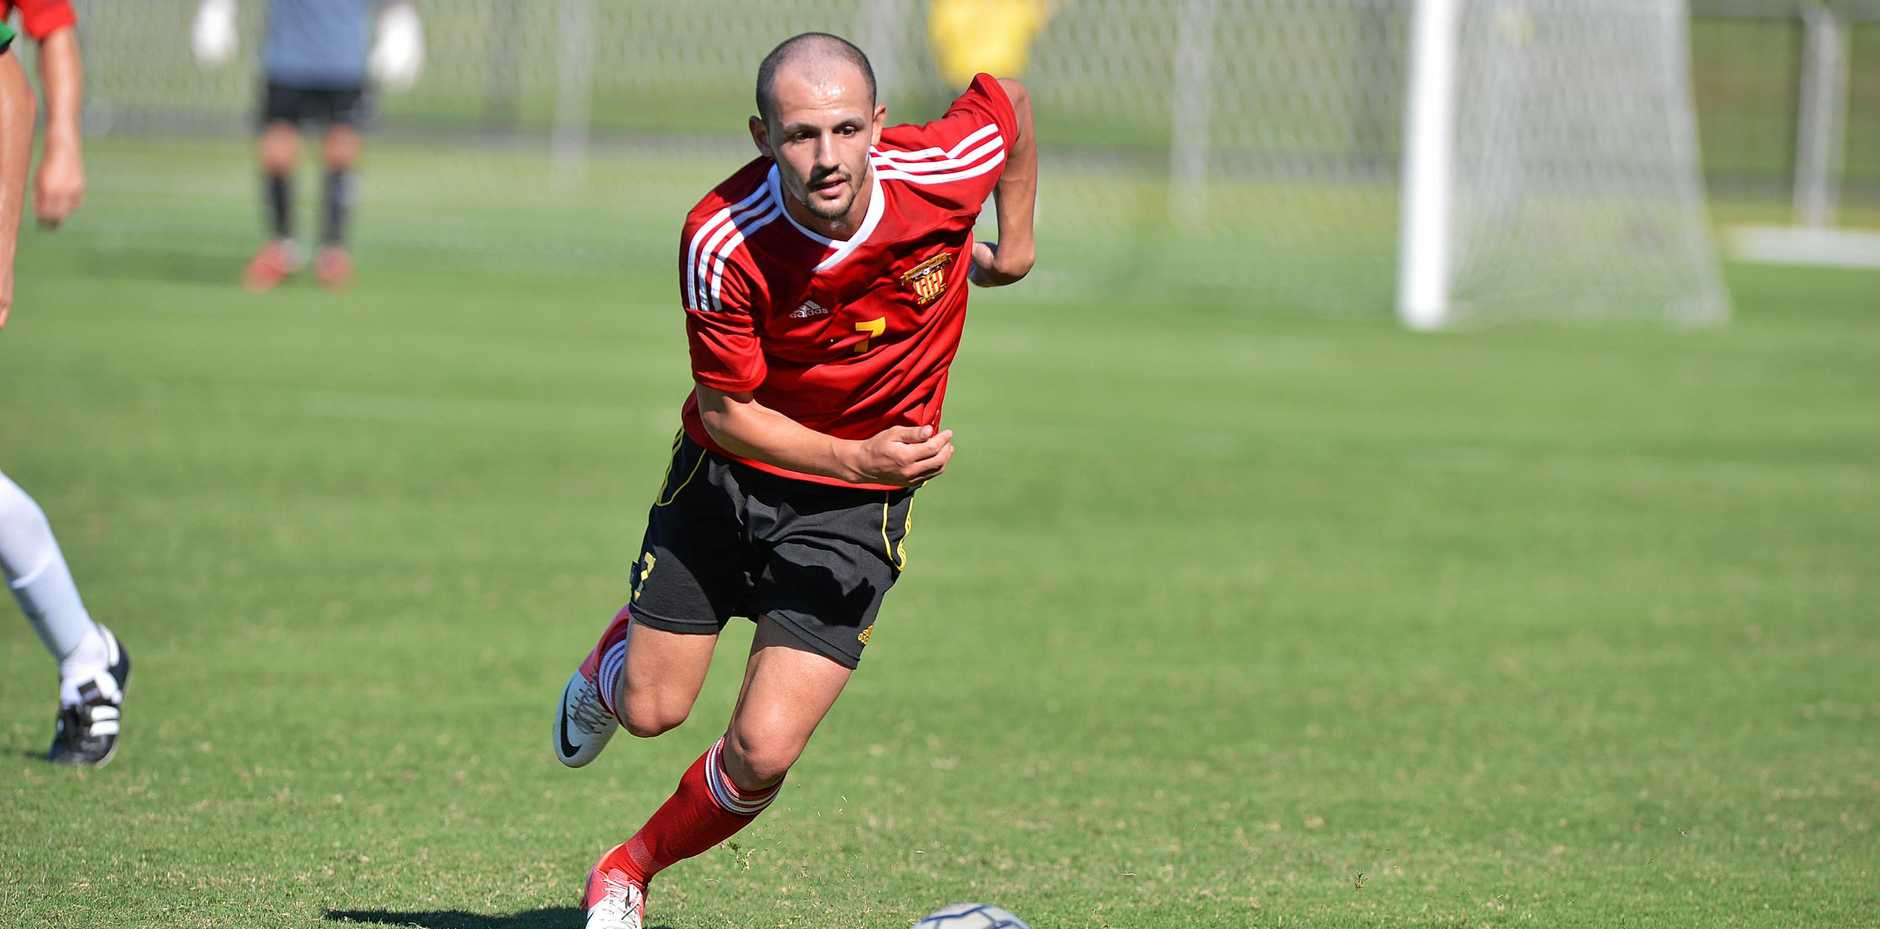 'You really don't know who I am?' Former Sunshine Coast Fire and Redlands United FC player Niko Bechar has been labelled a 'disgusting' coward.